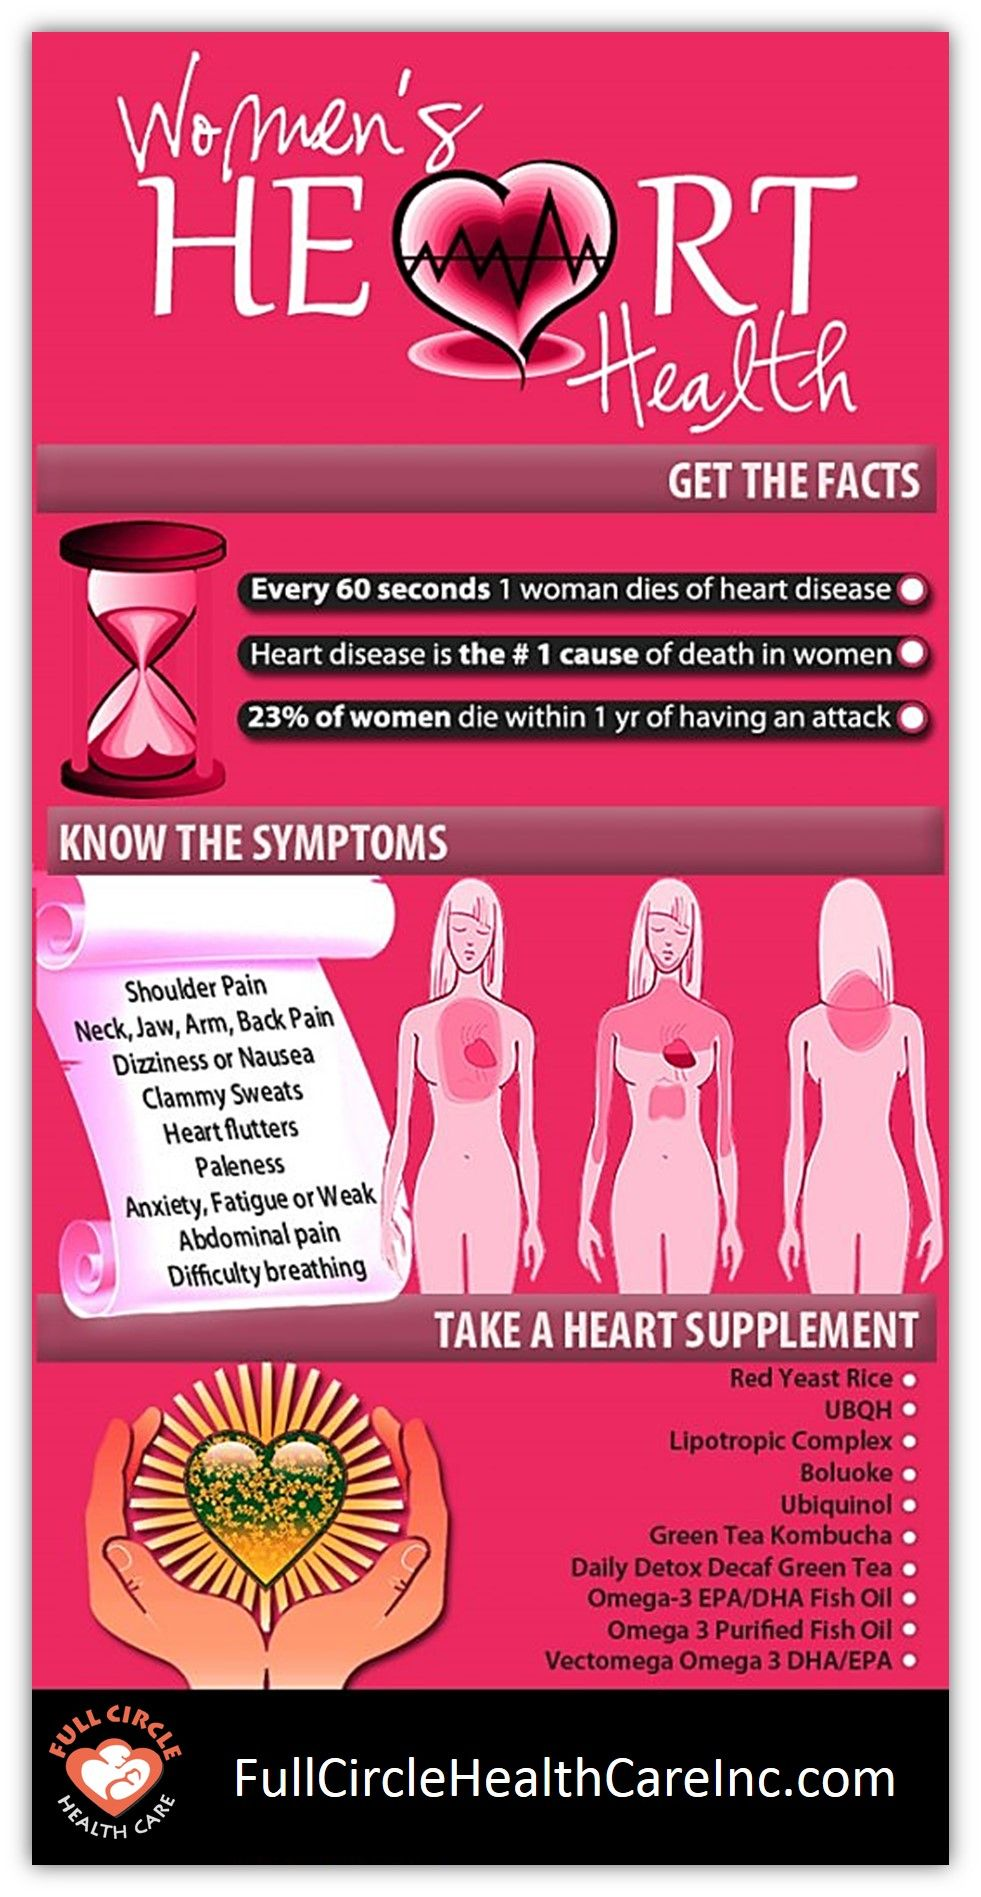 Get the facts on womens heart health from full circle